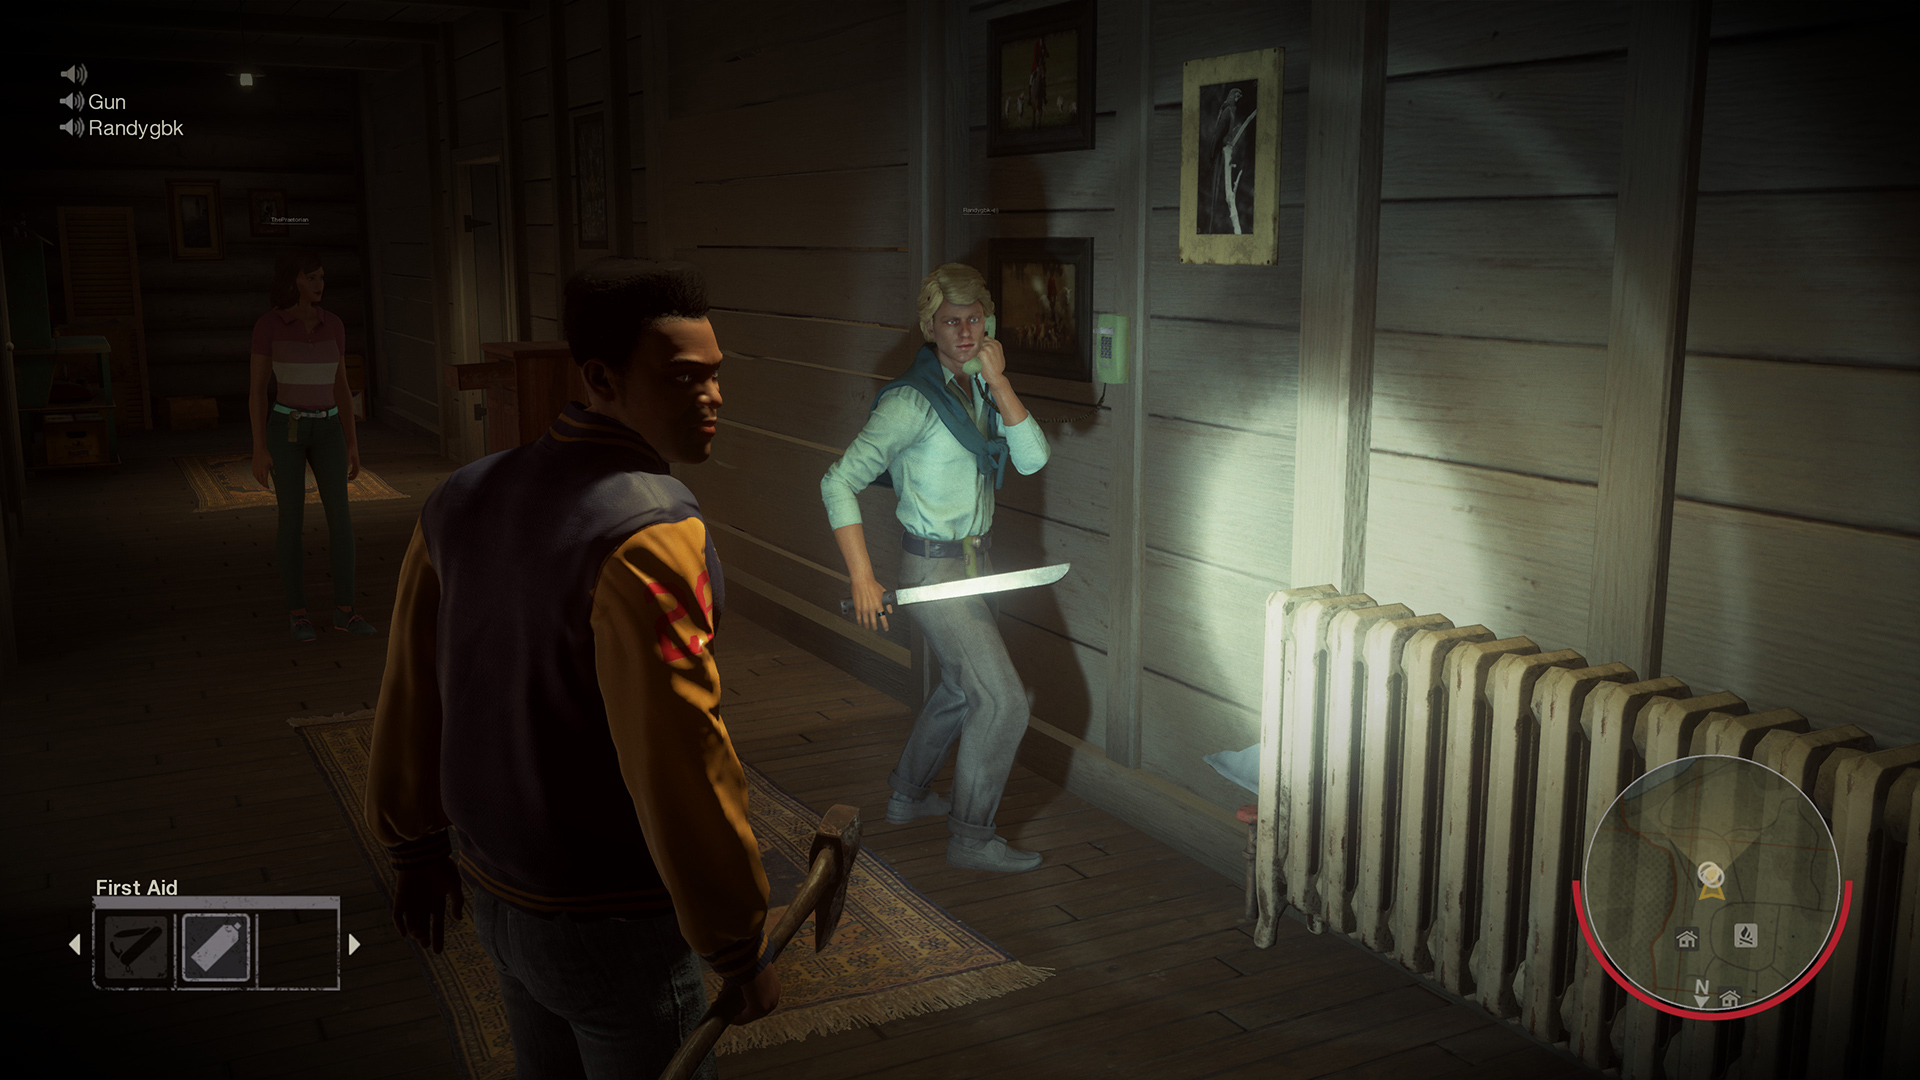 The next Friday the 13th update will target team killing screenshot